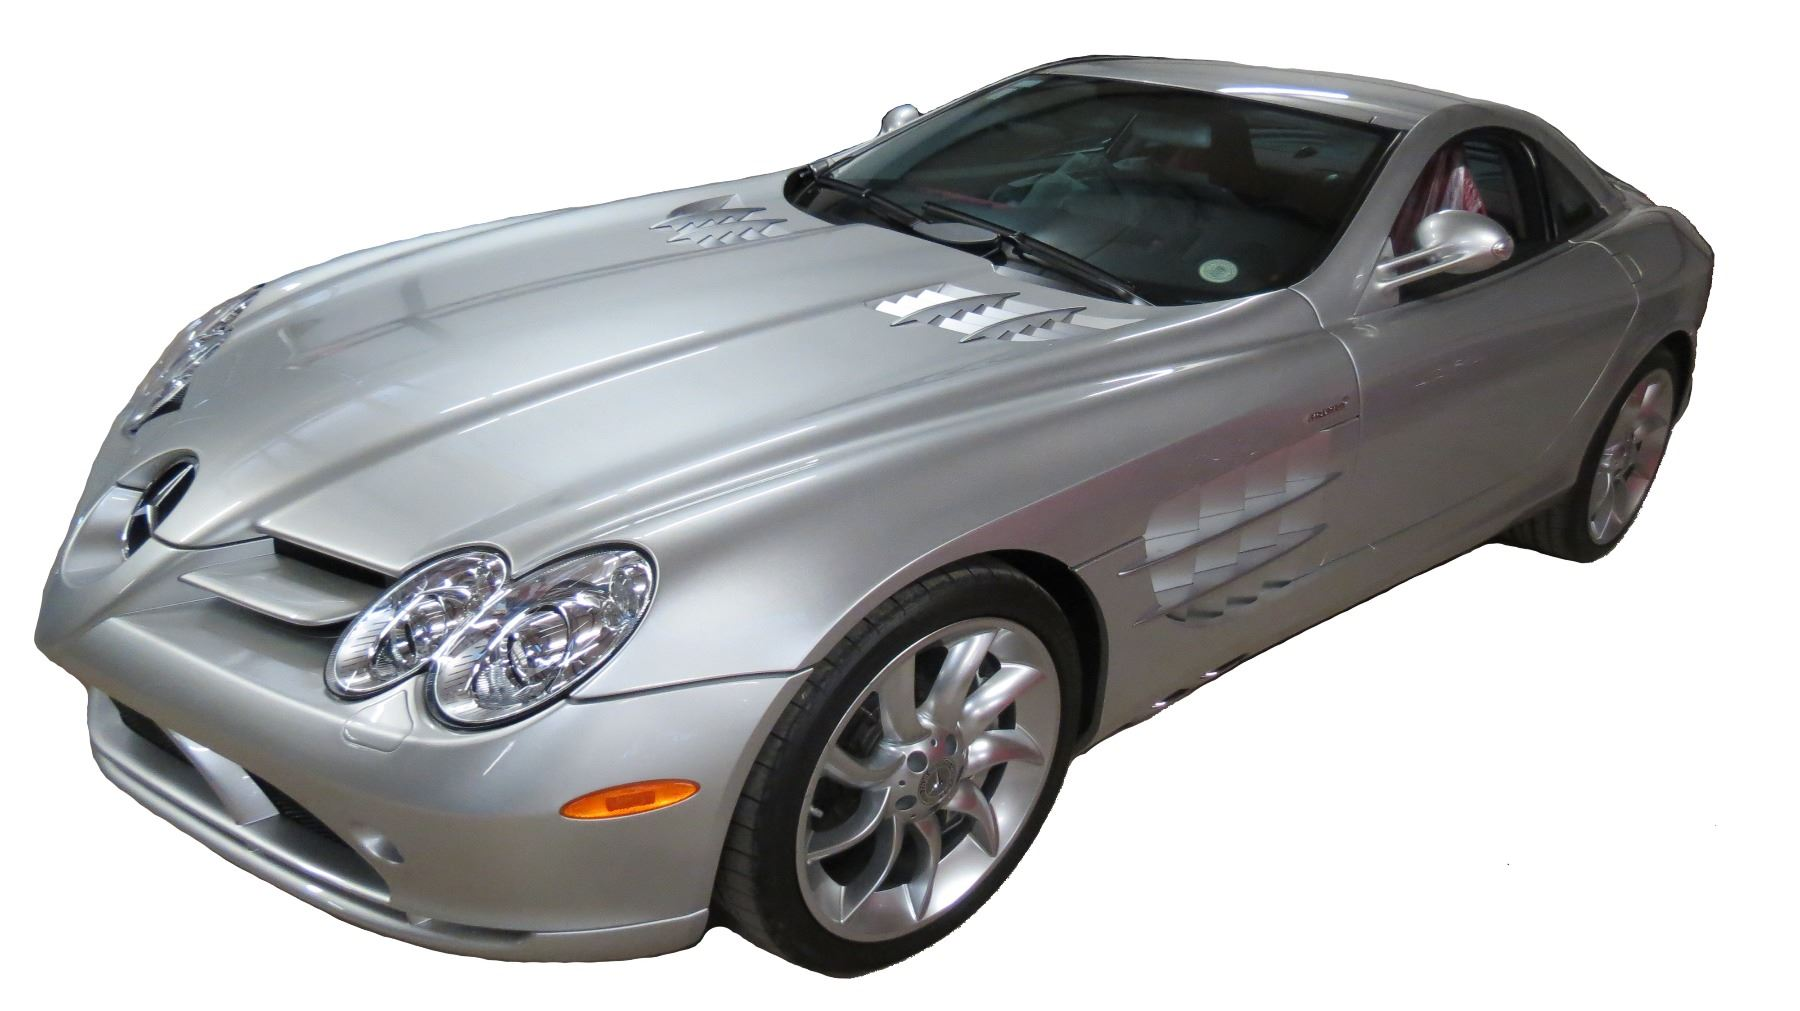 Video; Image 1  2005 Mercedes-Benz SLR McLaren Coupe with Butterfly Doors; 5.5L ...  sc 1 st  iCollector.com & 2005 Mercedes-Benz SLR McLaren Coupe with Butterfly Doors; 5.5L V8 ...